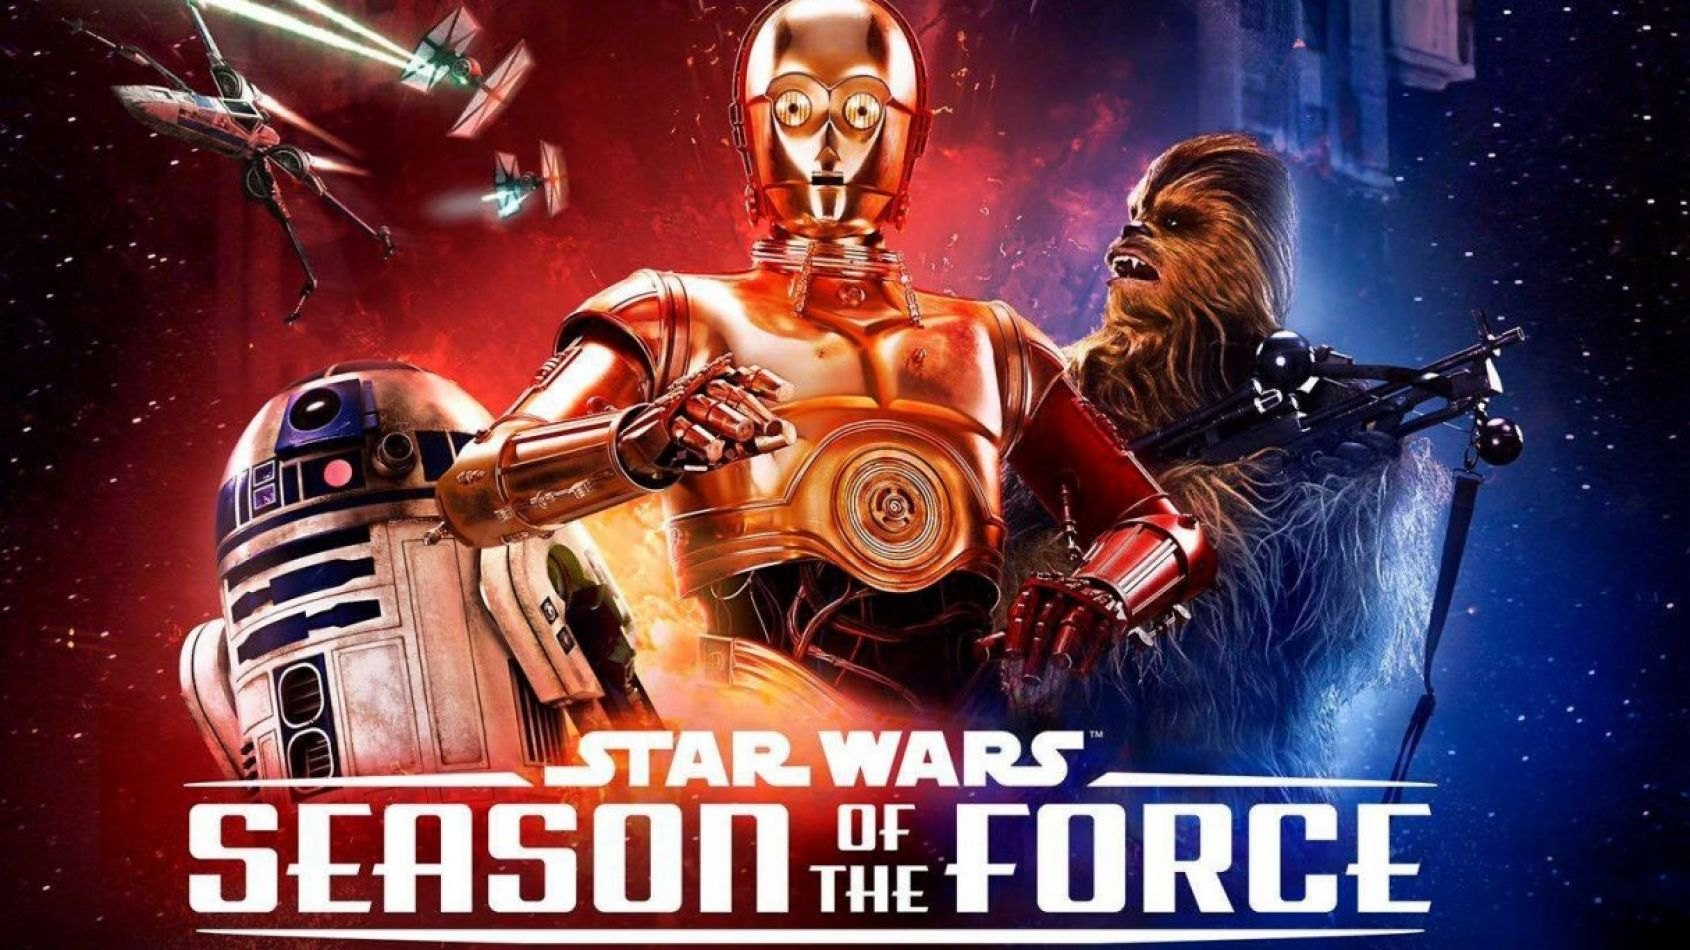 La Saison de la Force reviendra en 2018 à Disneyland Paris !